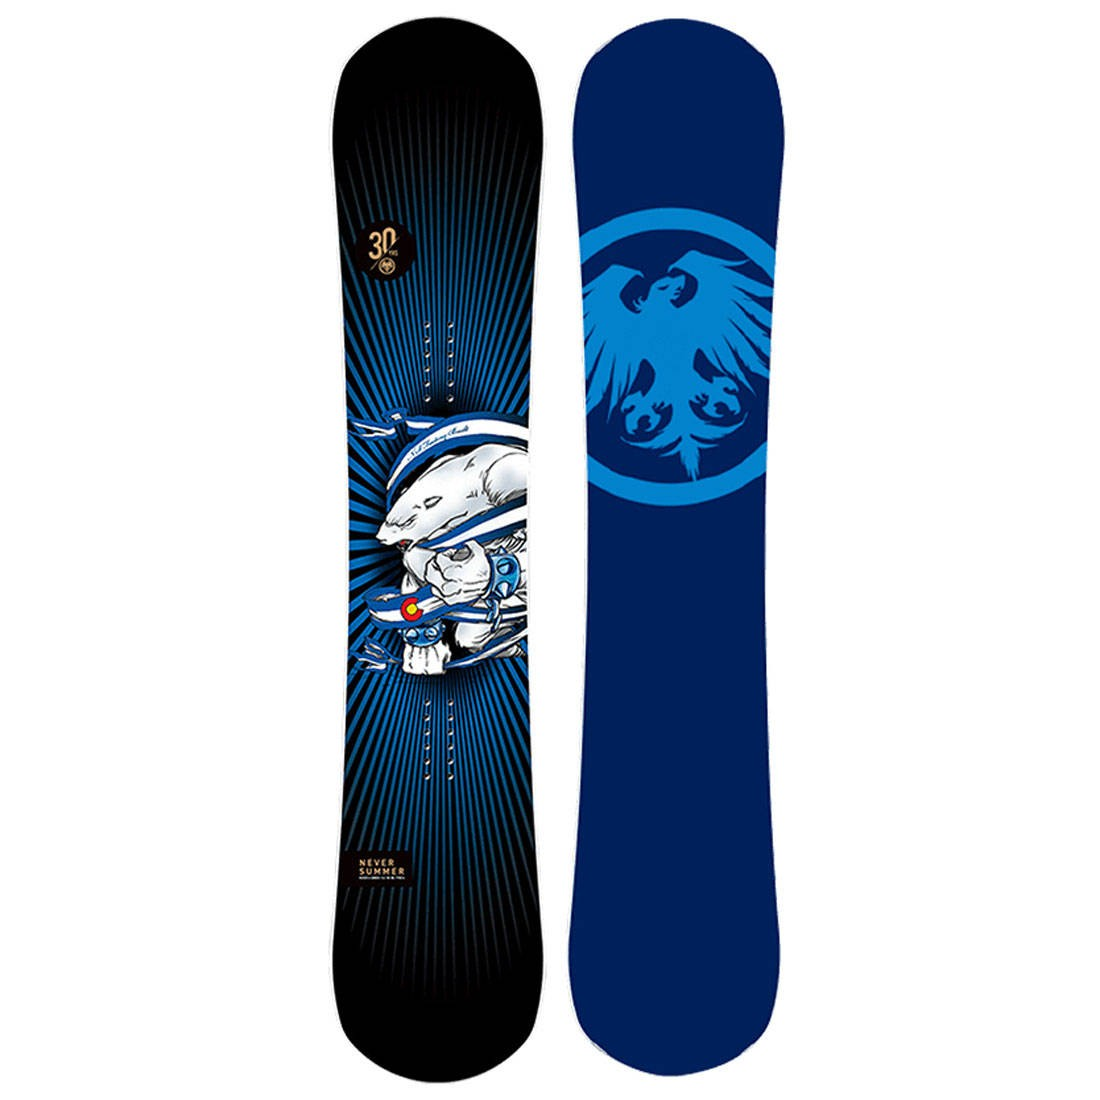 Never Summer 2021 Proto Synthesis 30th Anniversary Limited Edition Snowboard (multi)